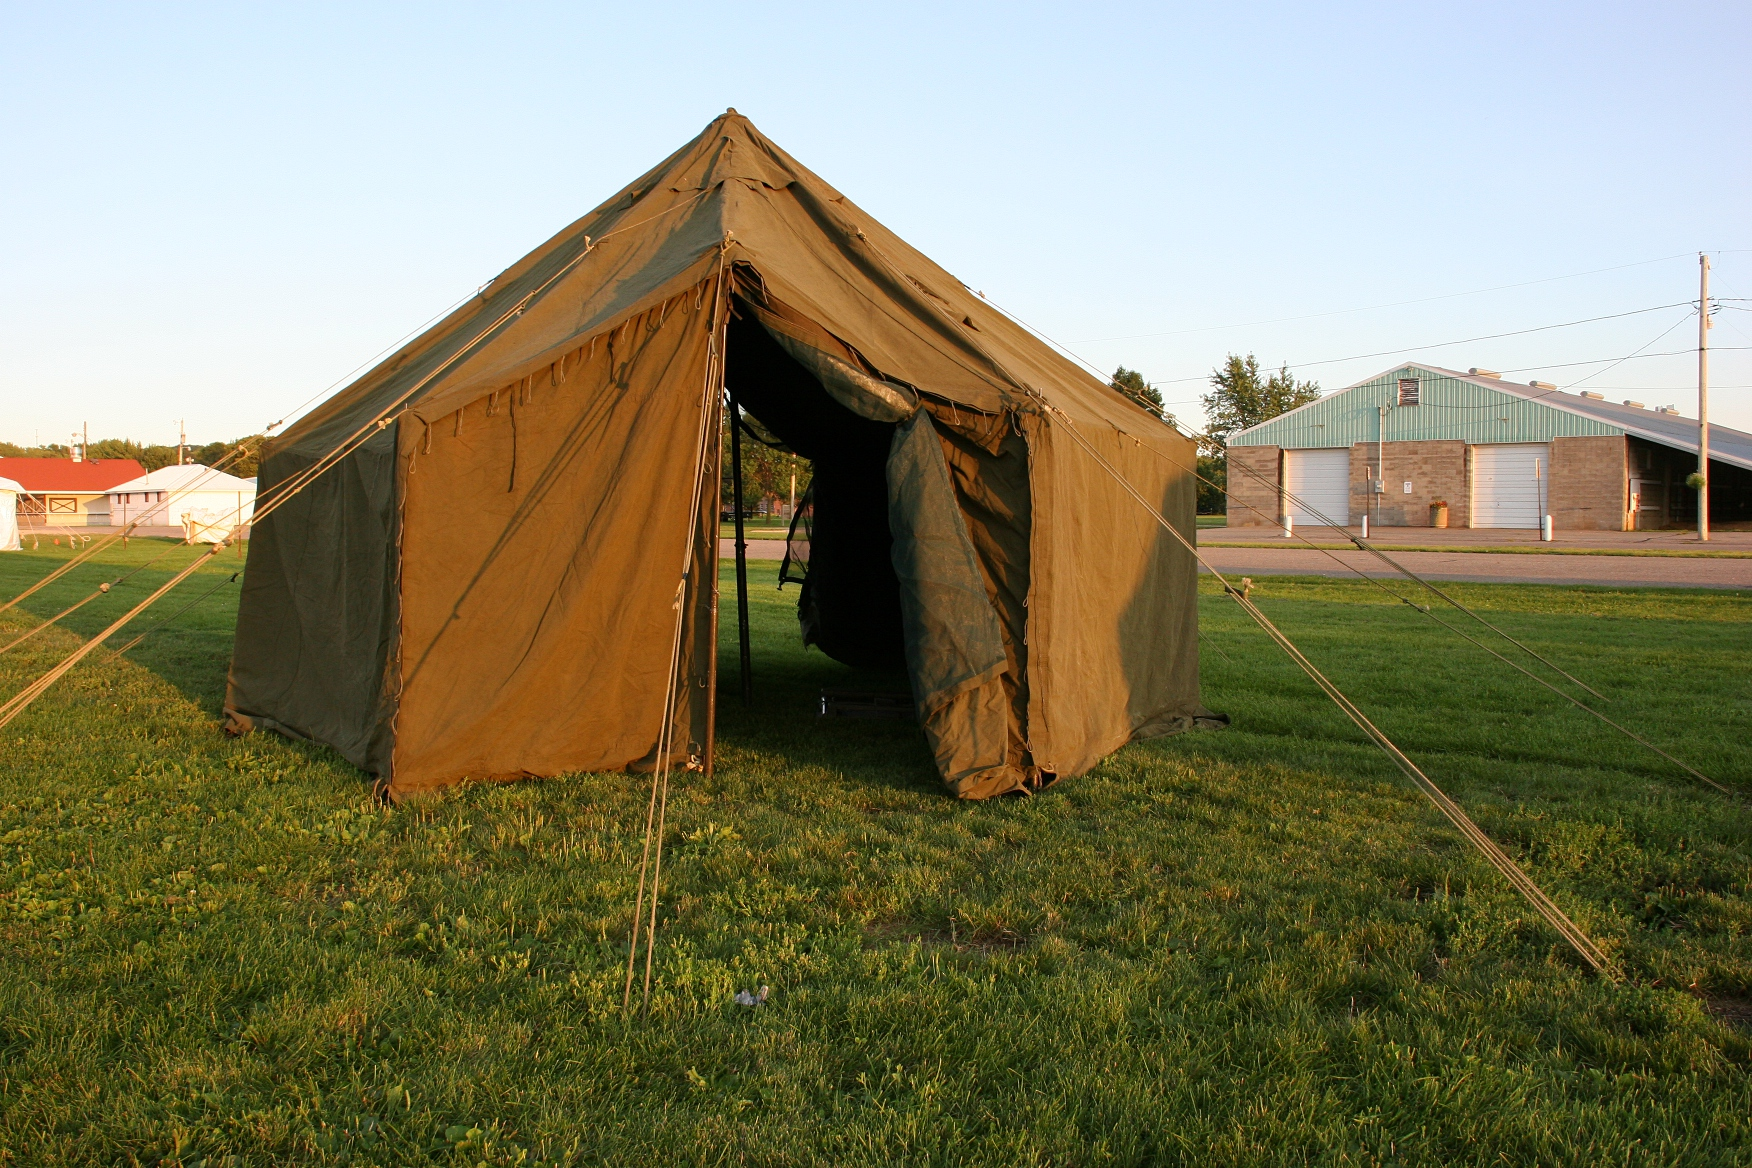 A preview of the Traveling Vietnam Memorial opening today in Faribault » Vietnam wall preview #11 military tent & Vietnam wall preview #11 military tent | Minnesota Prairie Roots